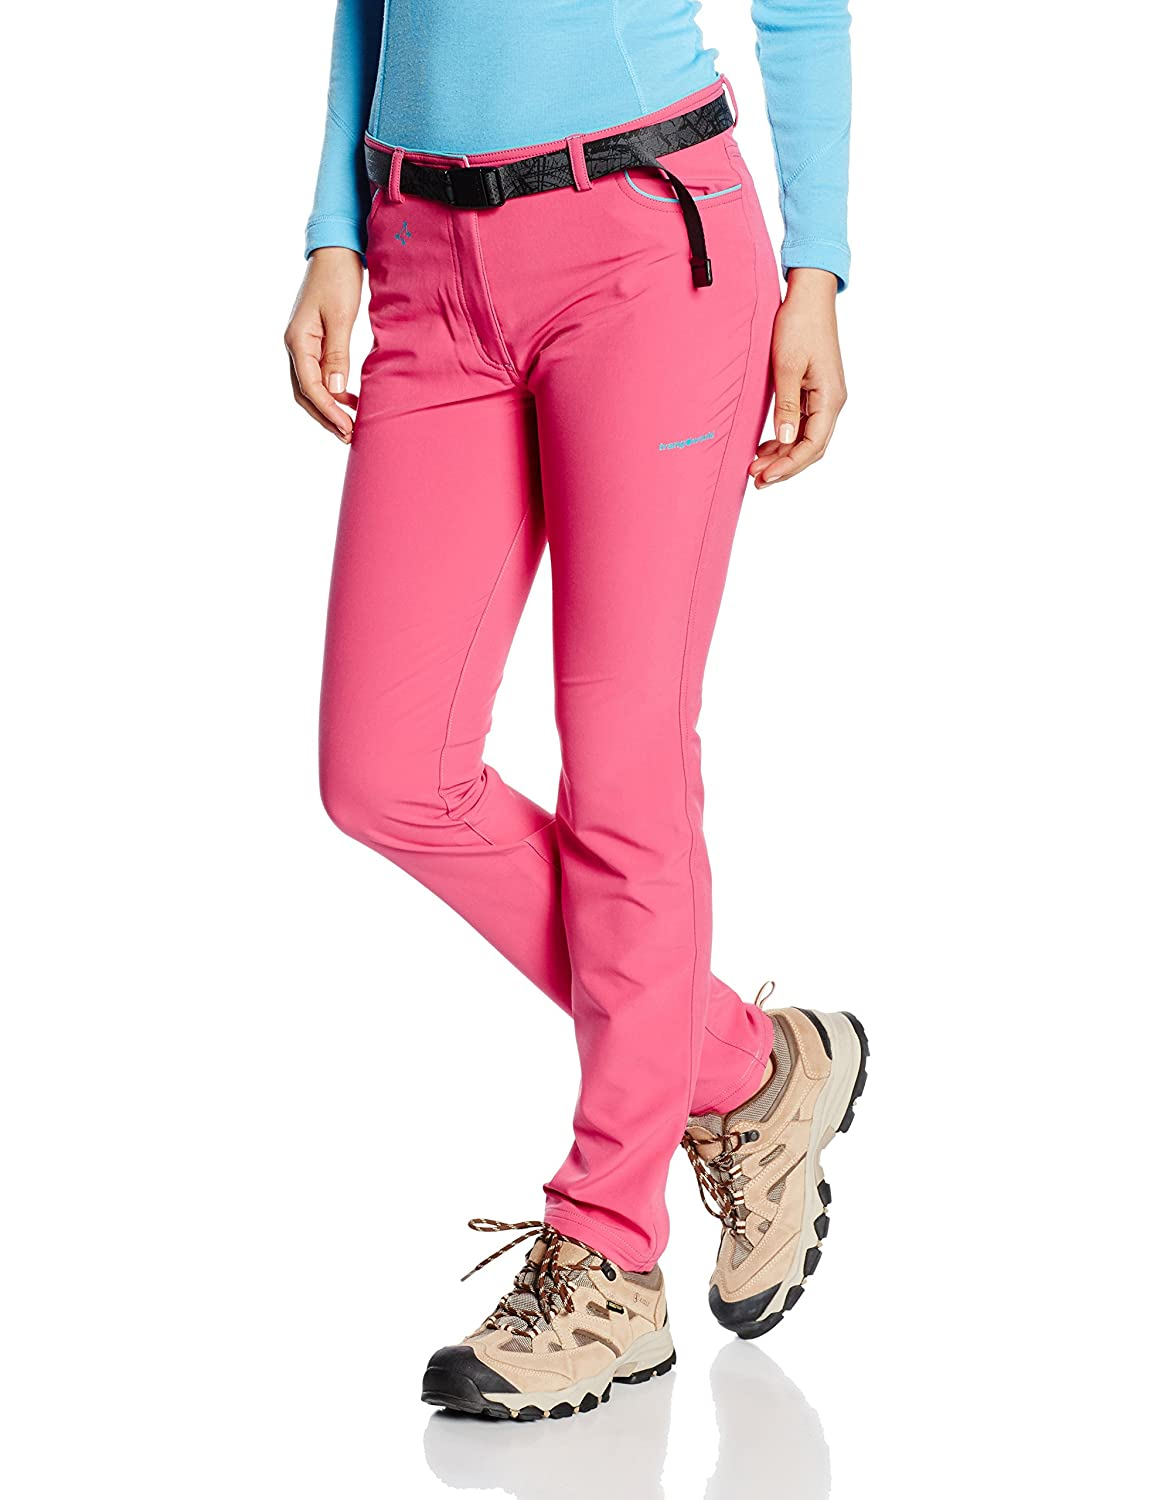 Trango Damen Hose Pants LARGO ELBERT, 8433849361384